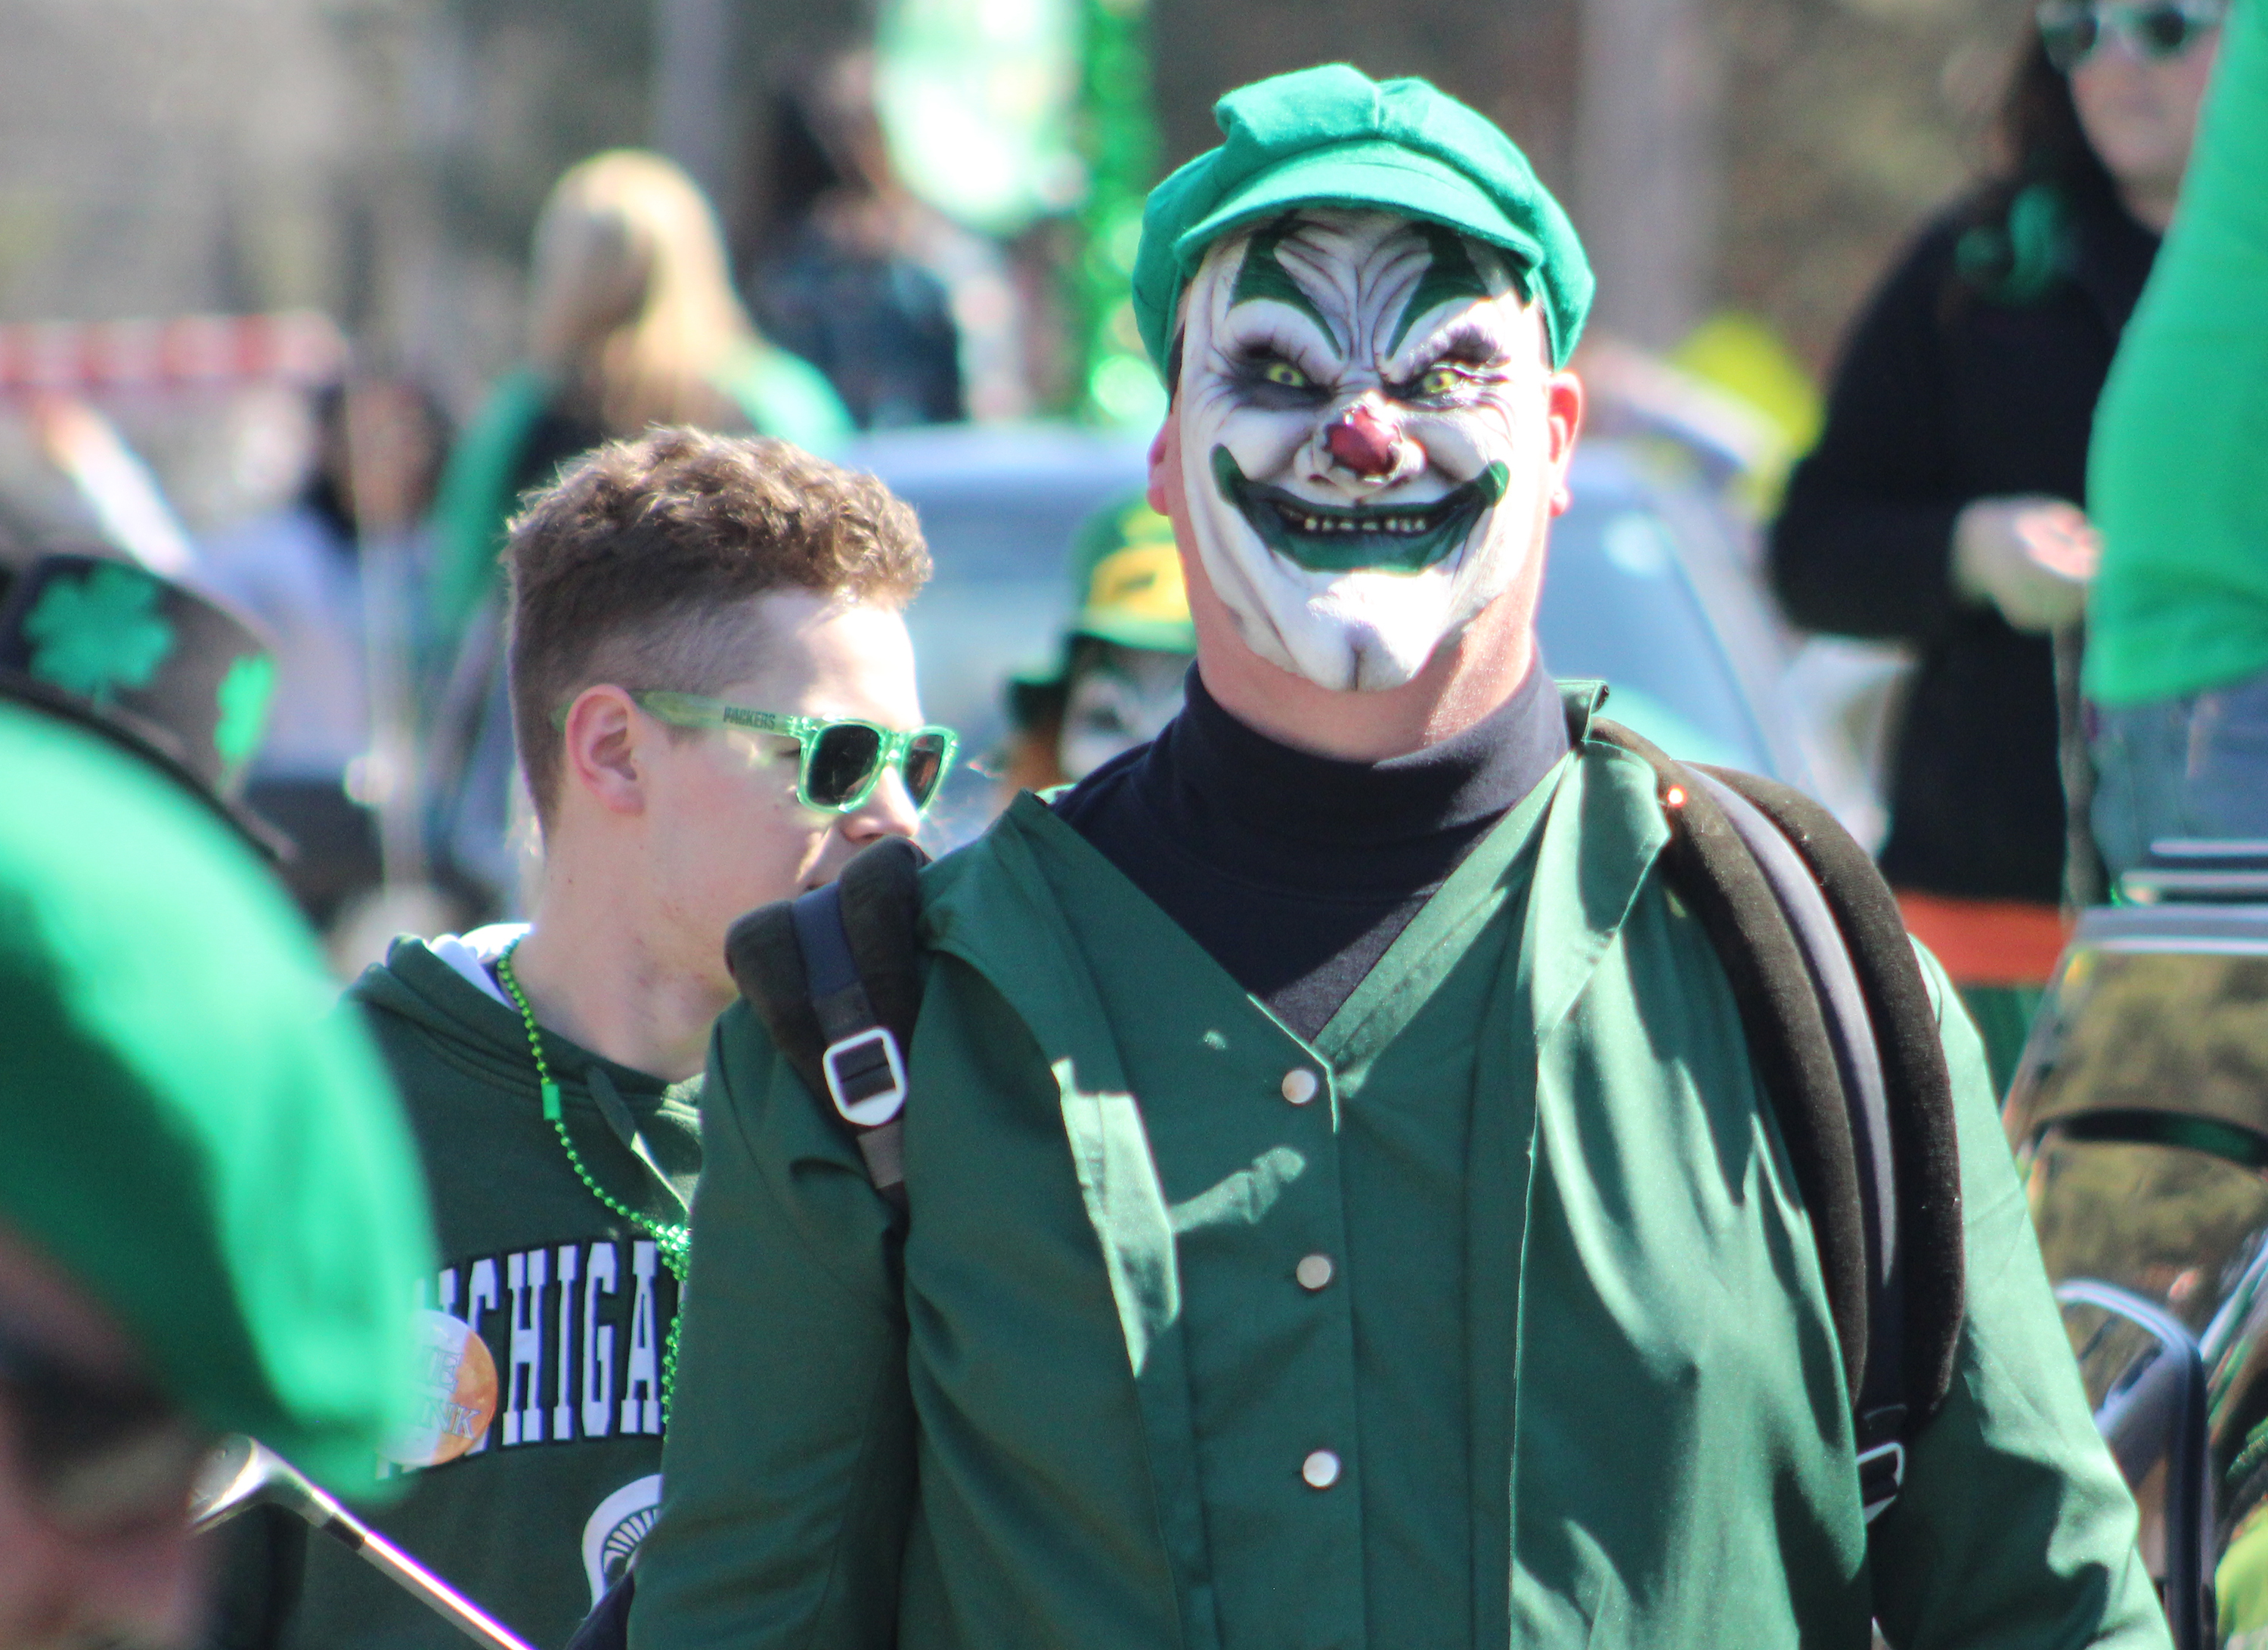 A naughty leprechaun provided a good scare to parade-goers March 13 during the Mooseyard St. Patrick's Day Parade in the Town of Wescott.(Lee Pulaski   NEW Media)